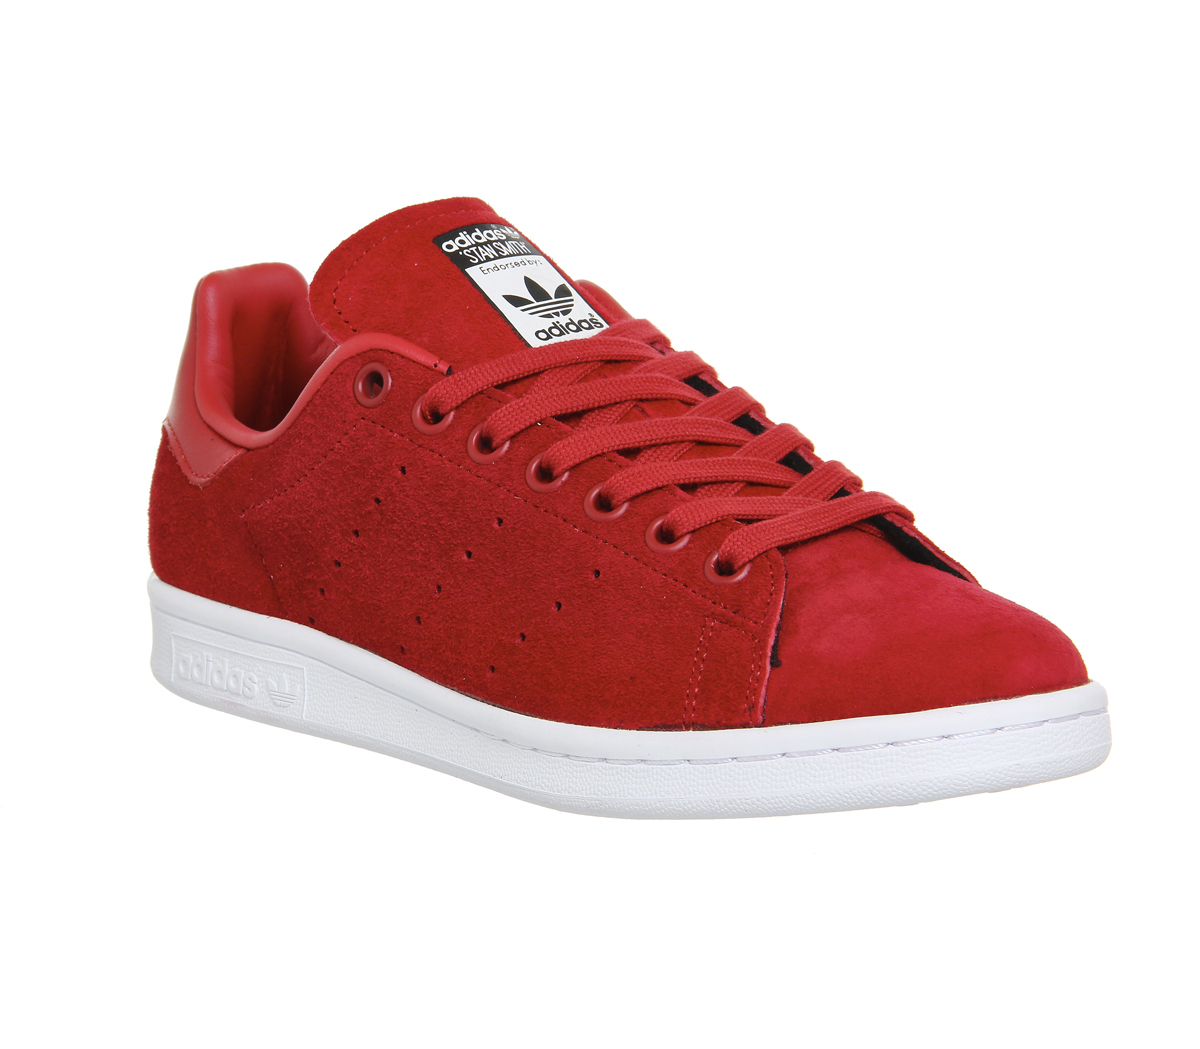 wholesale dealer 5830c 74d78 adidas stan smith red black friday